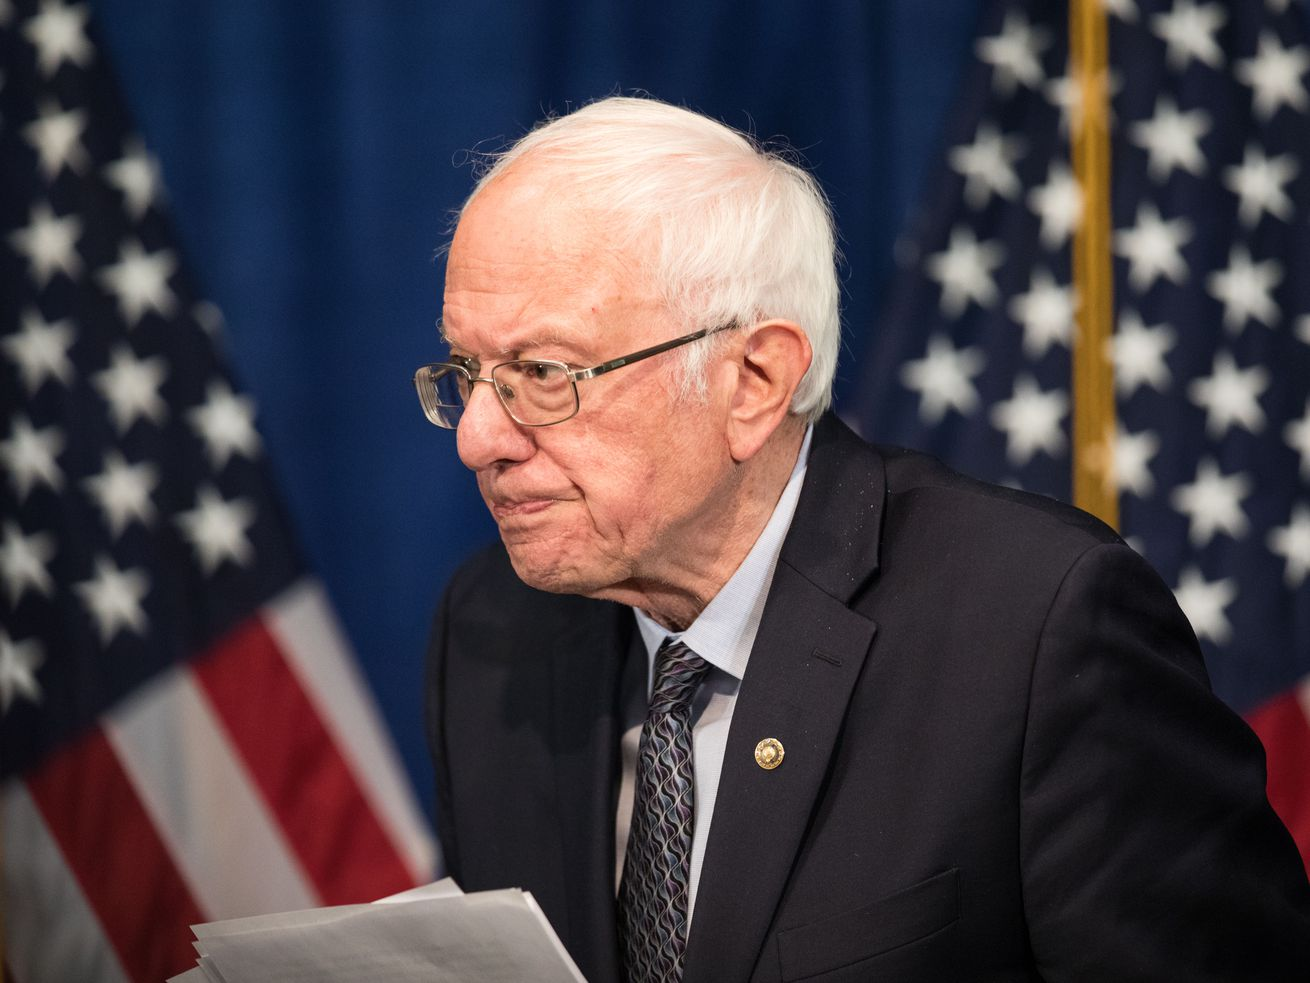 Bernie Sanders' campaign says he's reassessing, not dropping out